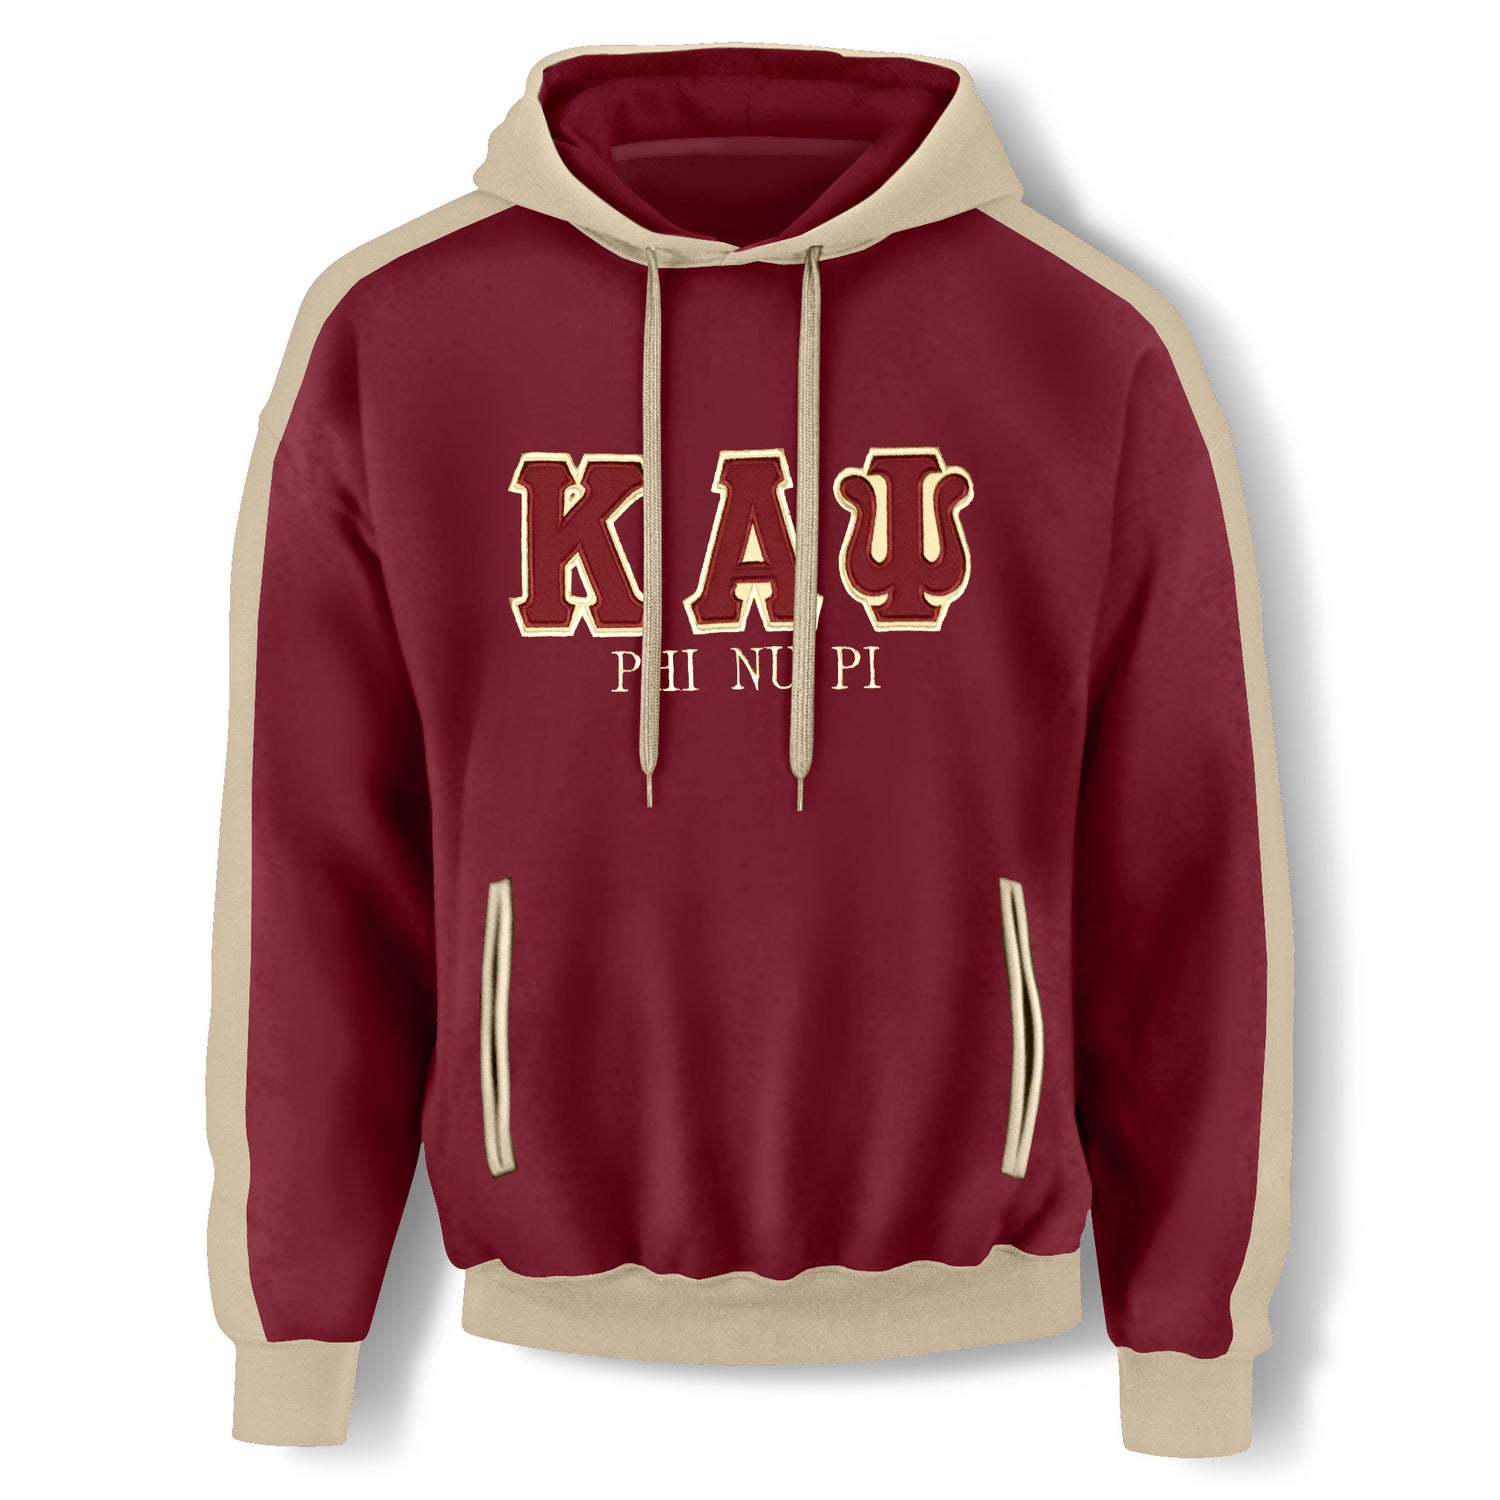 Image of Crimson Hooded Sweatshirt - KAΨ